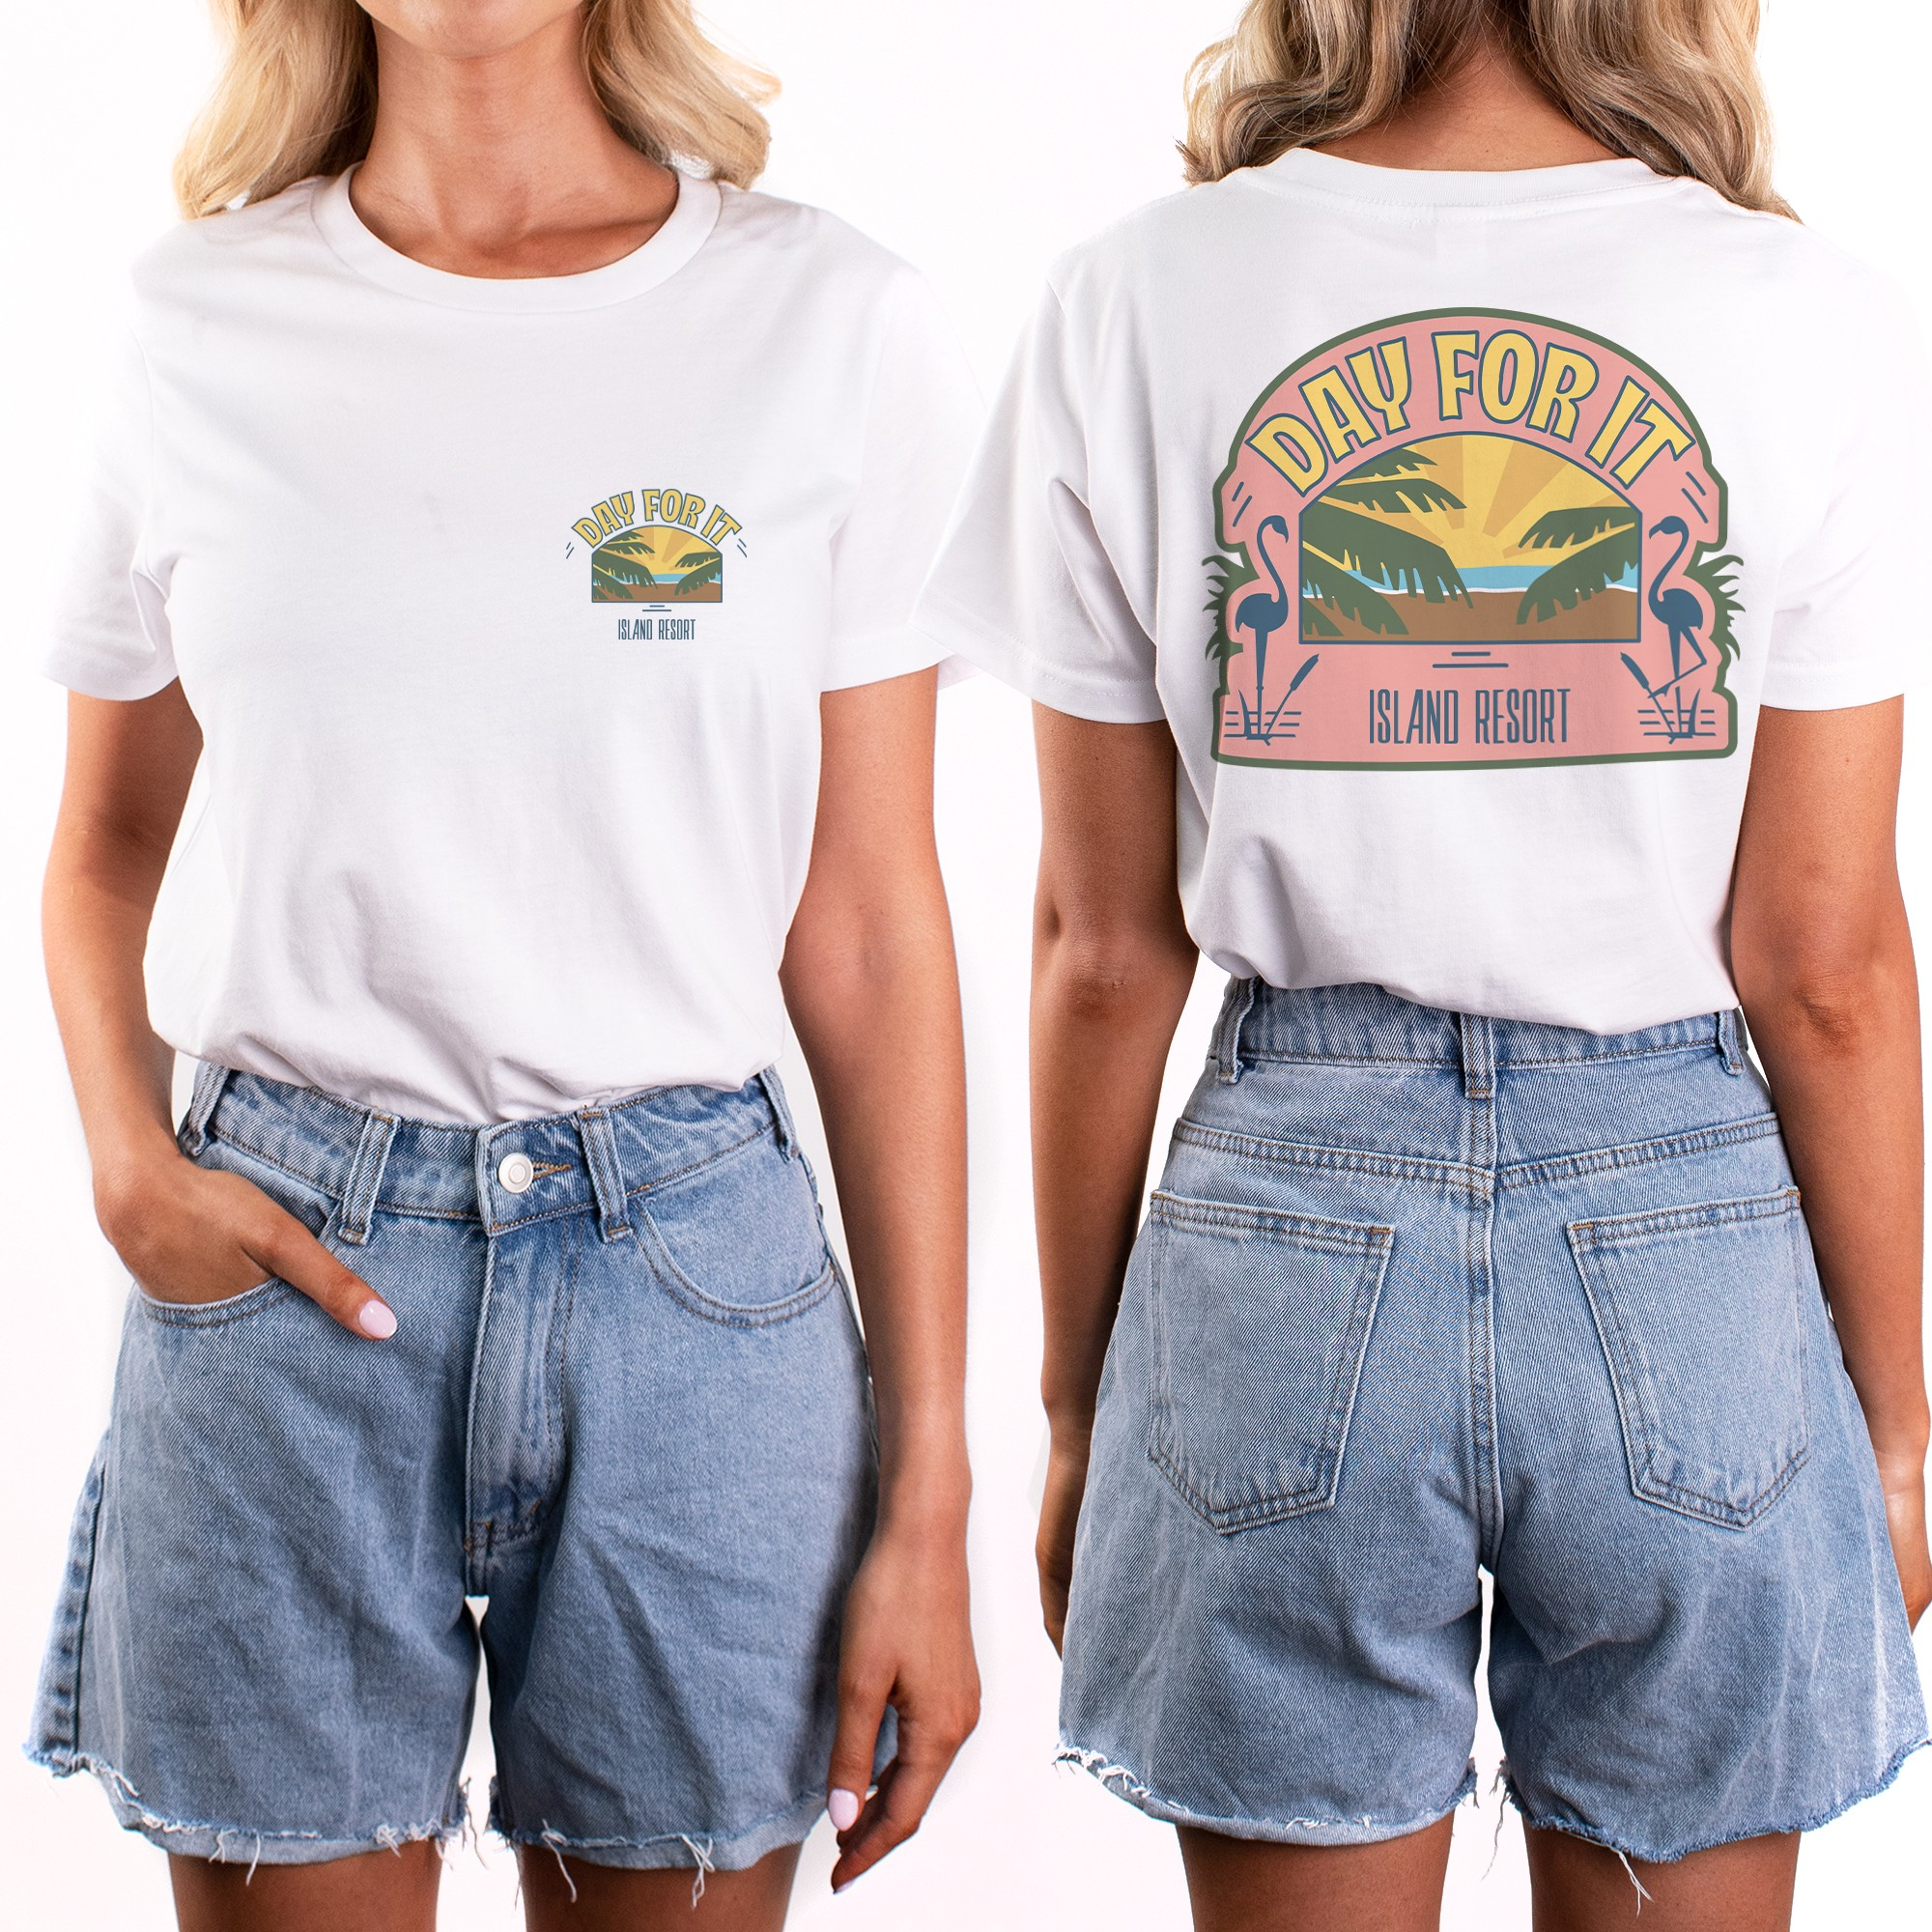 ISLAND RESORT DAY FOR IT WOMENS FRONT AND BACK TEE